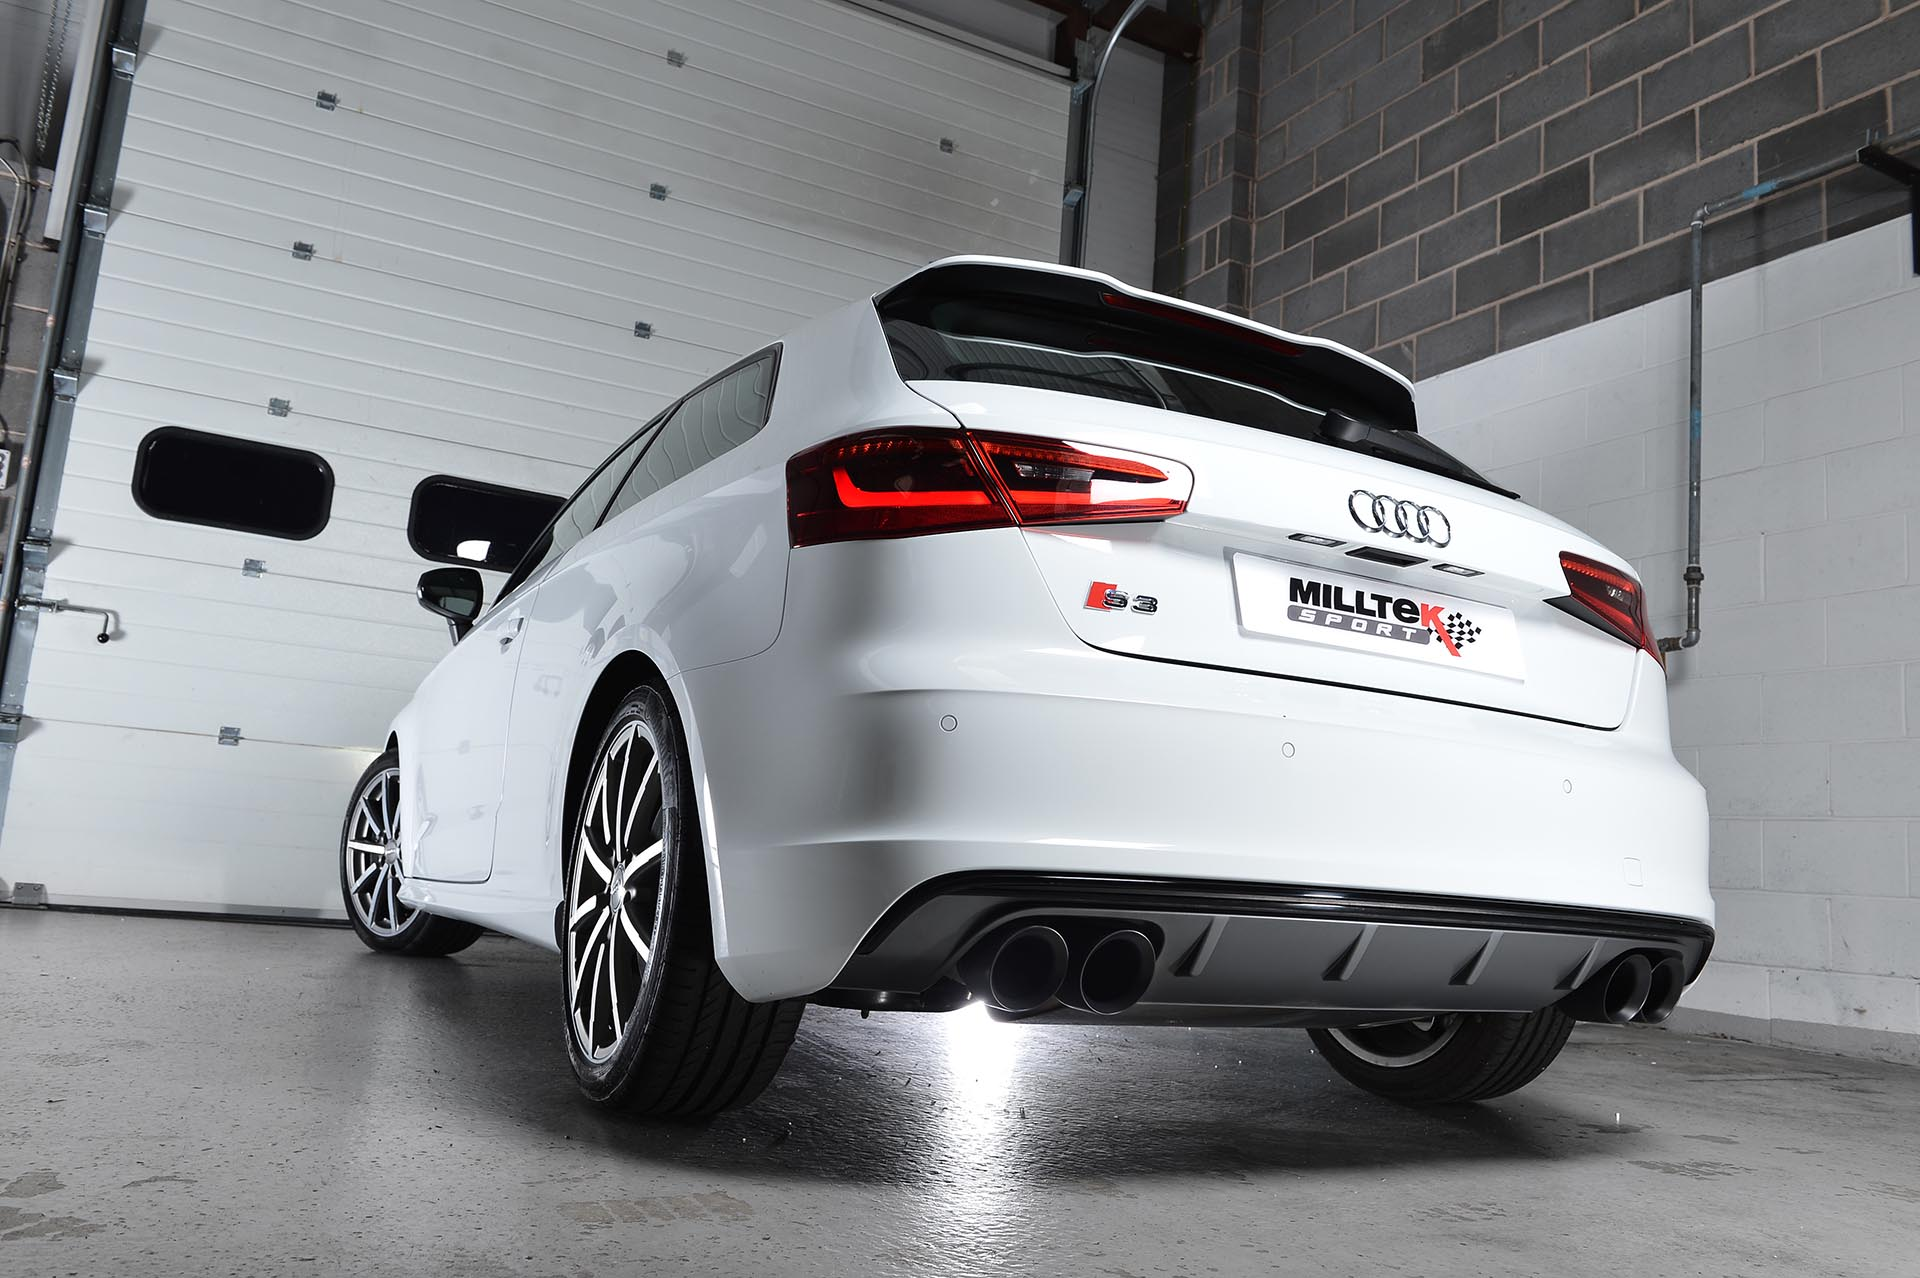 milltek cat back exhaust system valved audi s3 8v sportback clp tuning. Black Bedroom Furniture Sets. Home Design Ideas